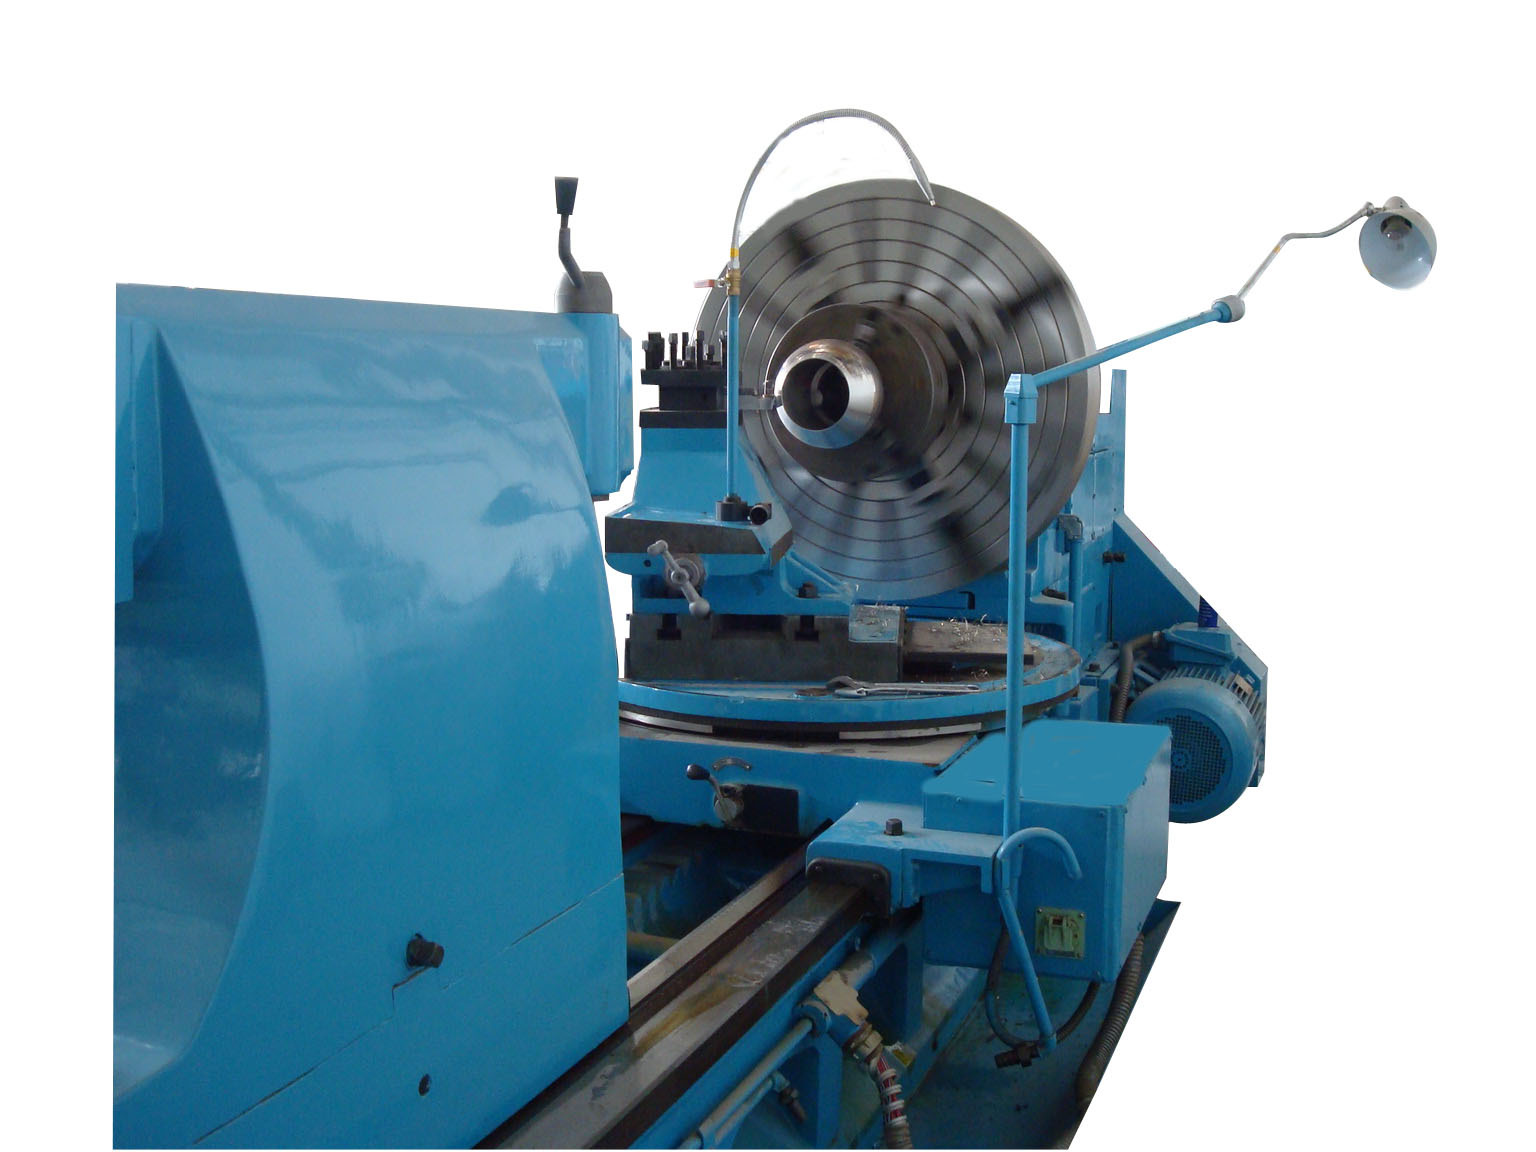 C65160 High quality ball cutting lathe ball lathe turner for ball surface